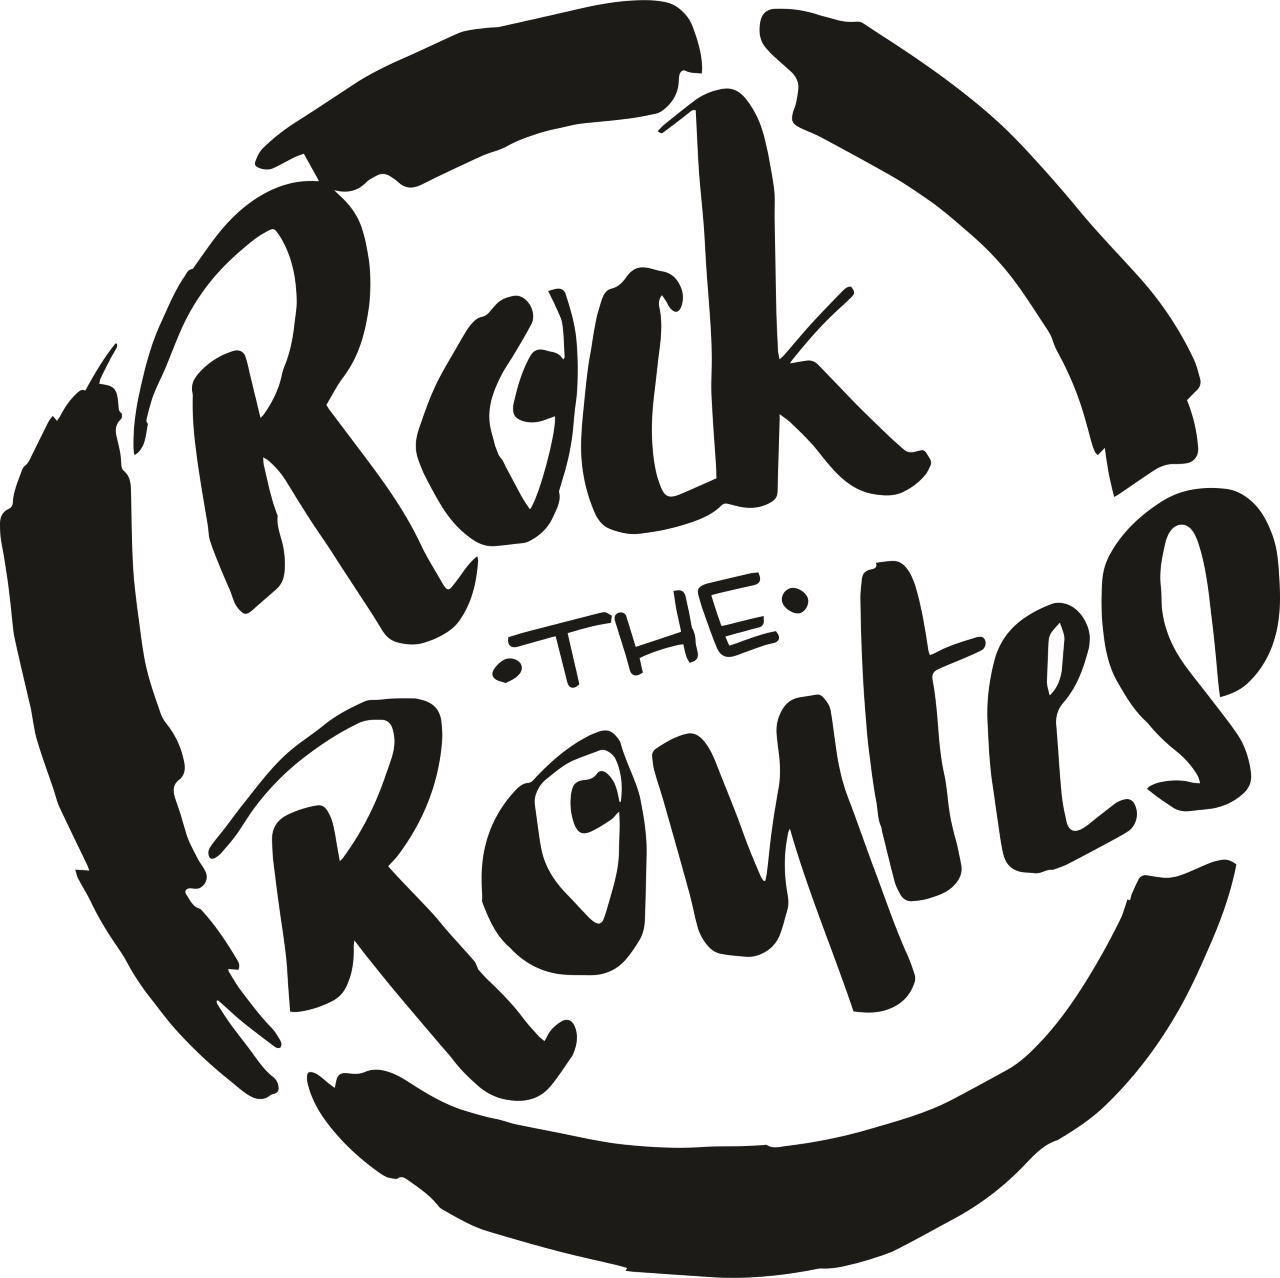 Rock the Routes